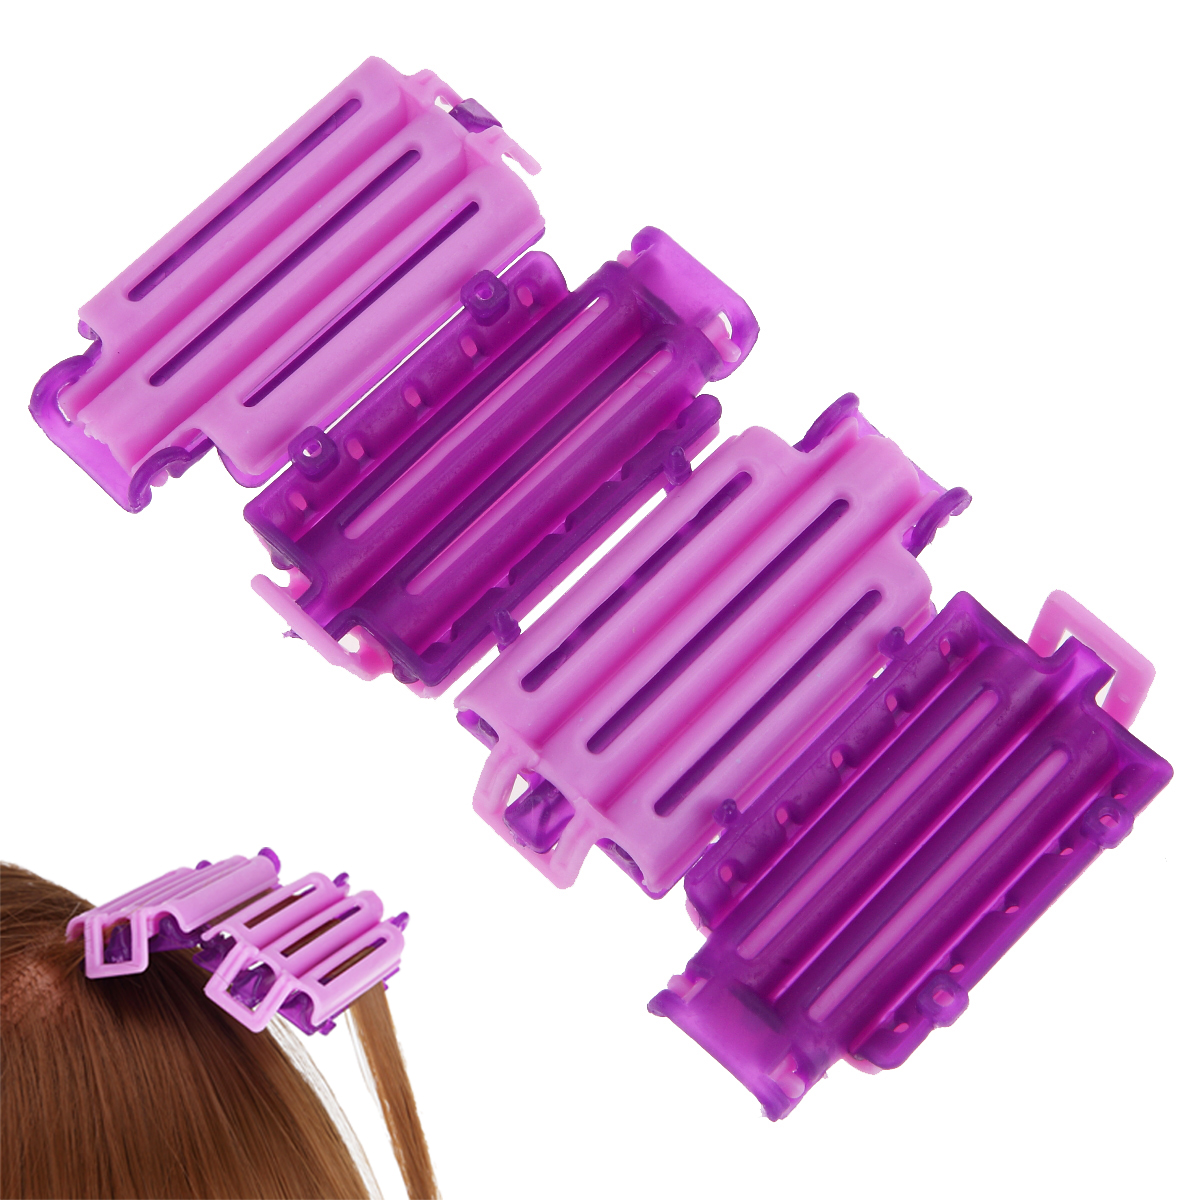 45pcs set Creative Magic Hair Clips Clamps Perm Rod Curlers Rollers Wavy Hair Maker Curling Spiral